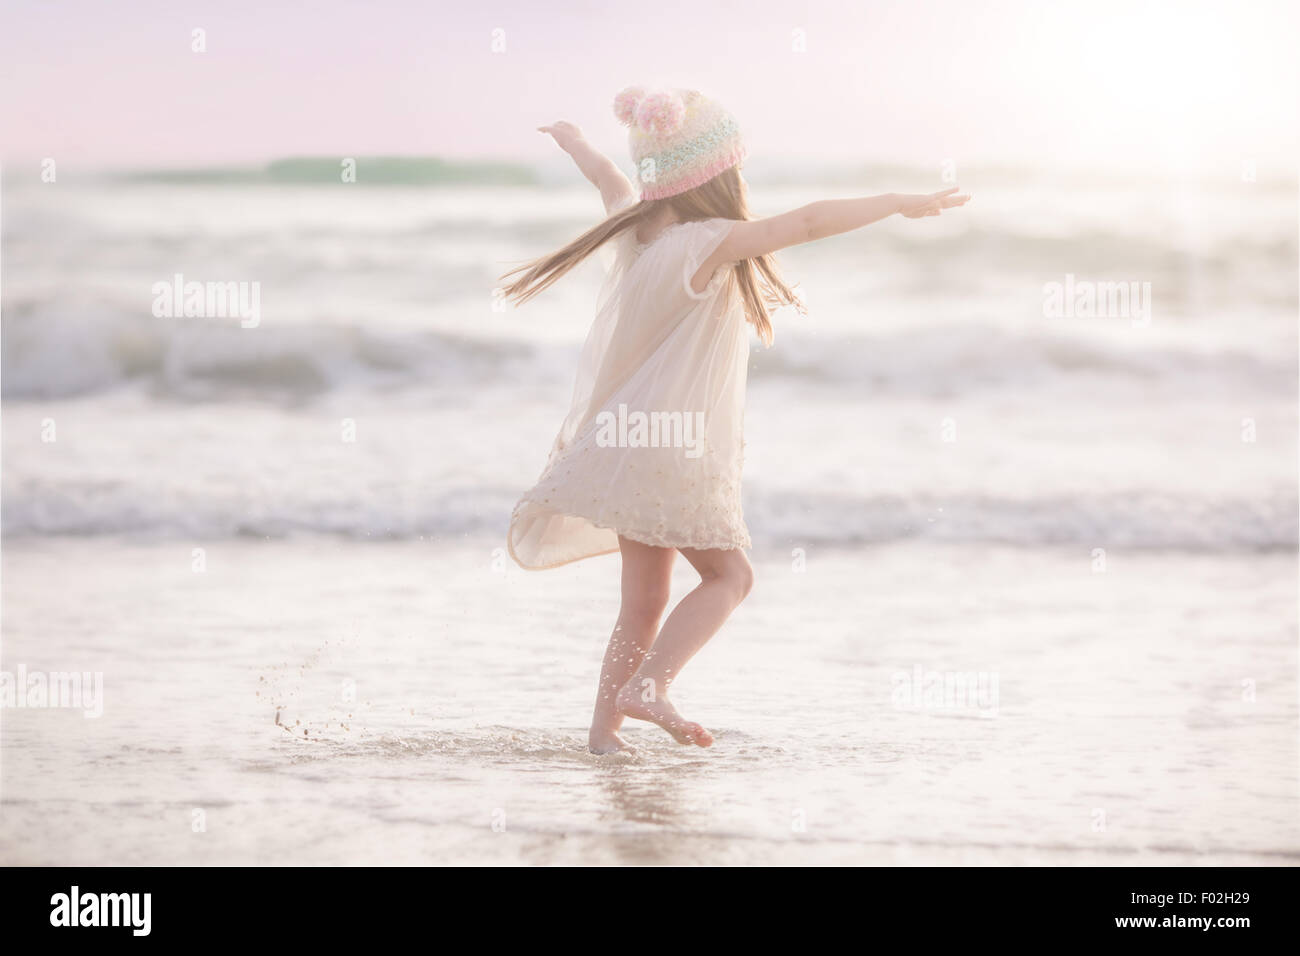 Girl dancing on the beach - Stock Image